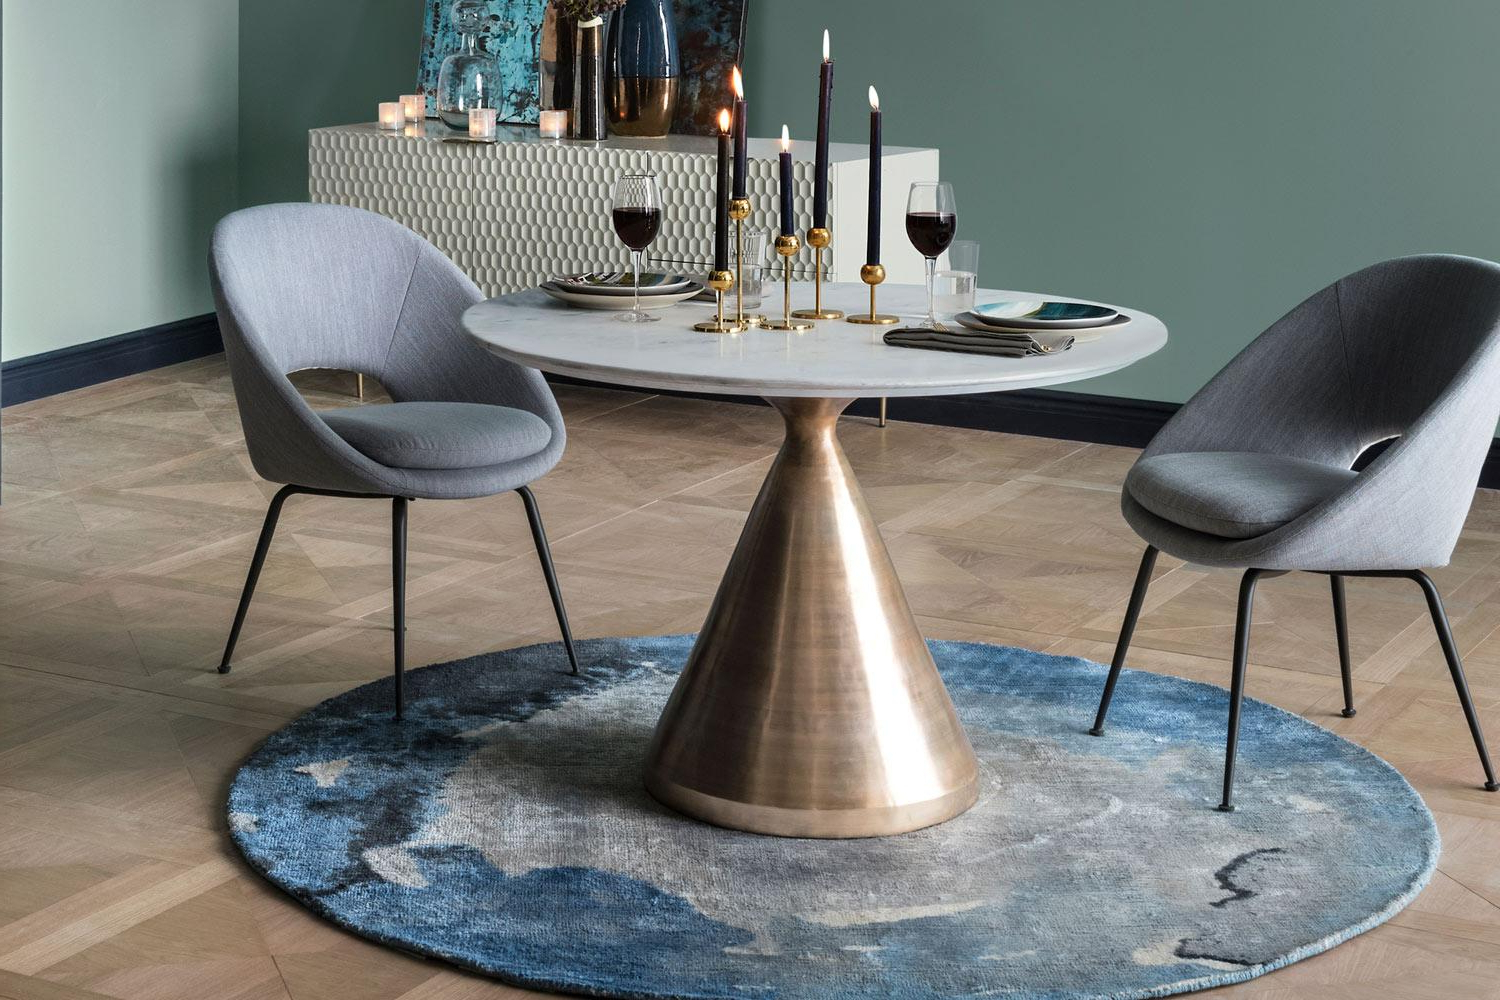 2017 Black Top Large Dining Tables With Metal Base Copper Finish With Regard To Best Dining Tables: The Best Stylish Dining Room Tables (View 8 of 30)